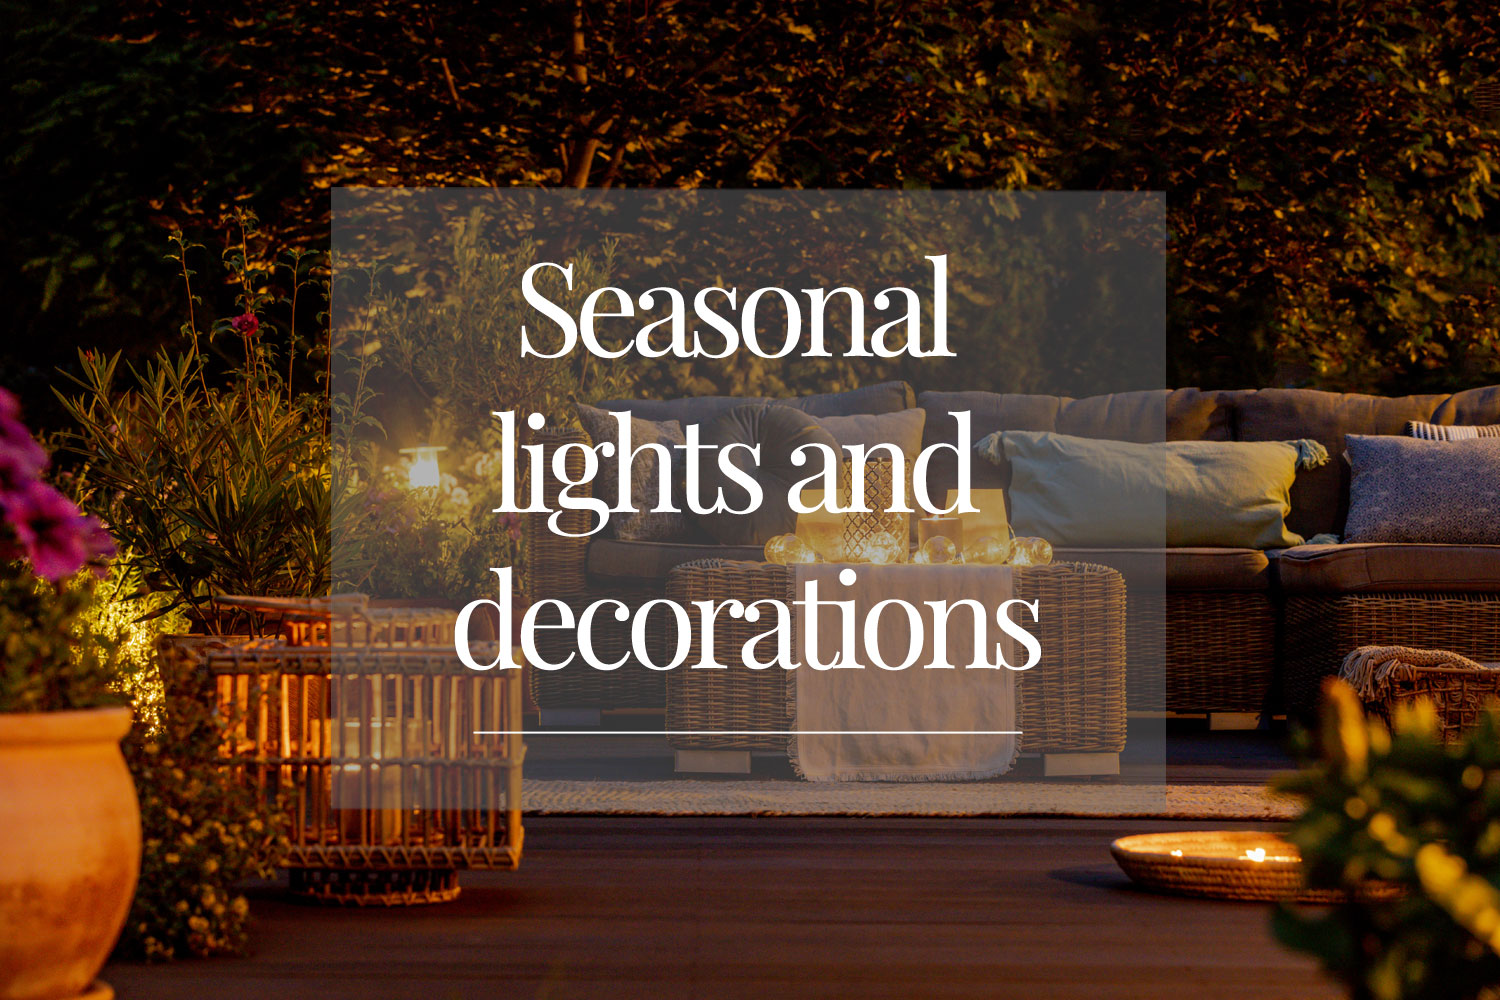 Seasonal-lights-and-decorations